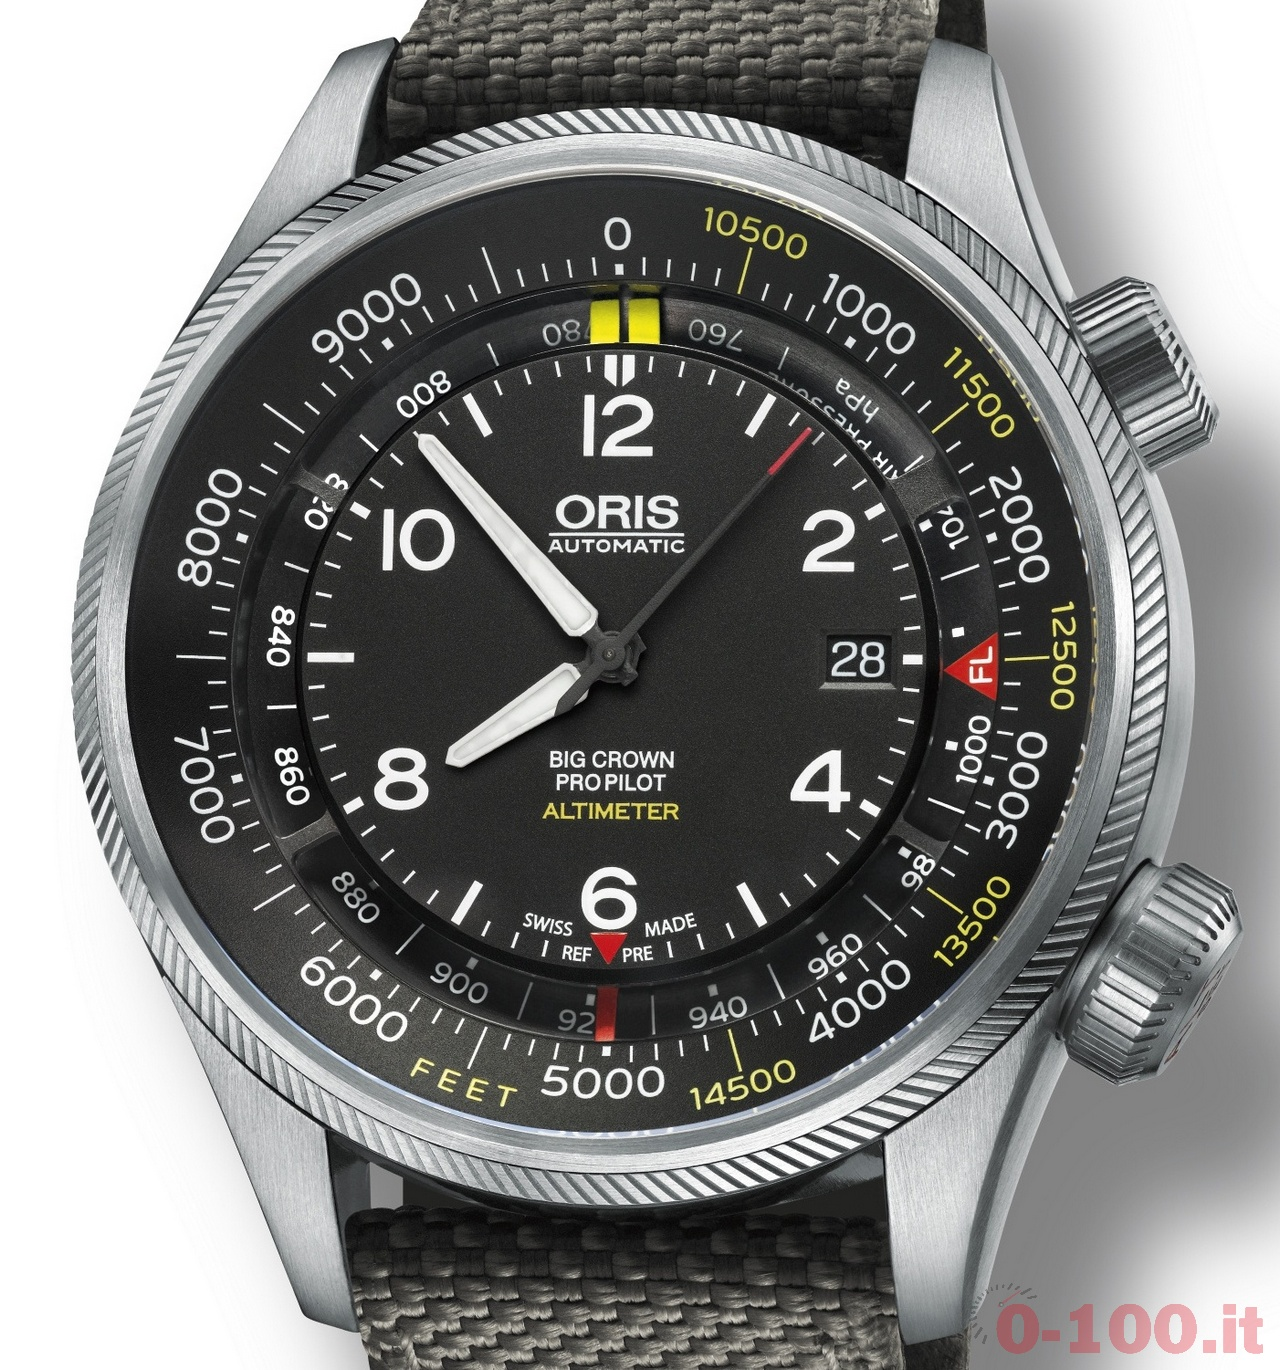 01 733 7705 4134-07 5 23 17FC_sps.tif Oris Big Crown ProPilot Altimeter